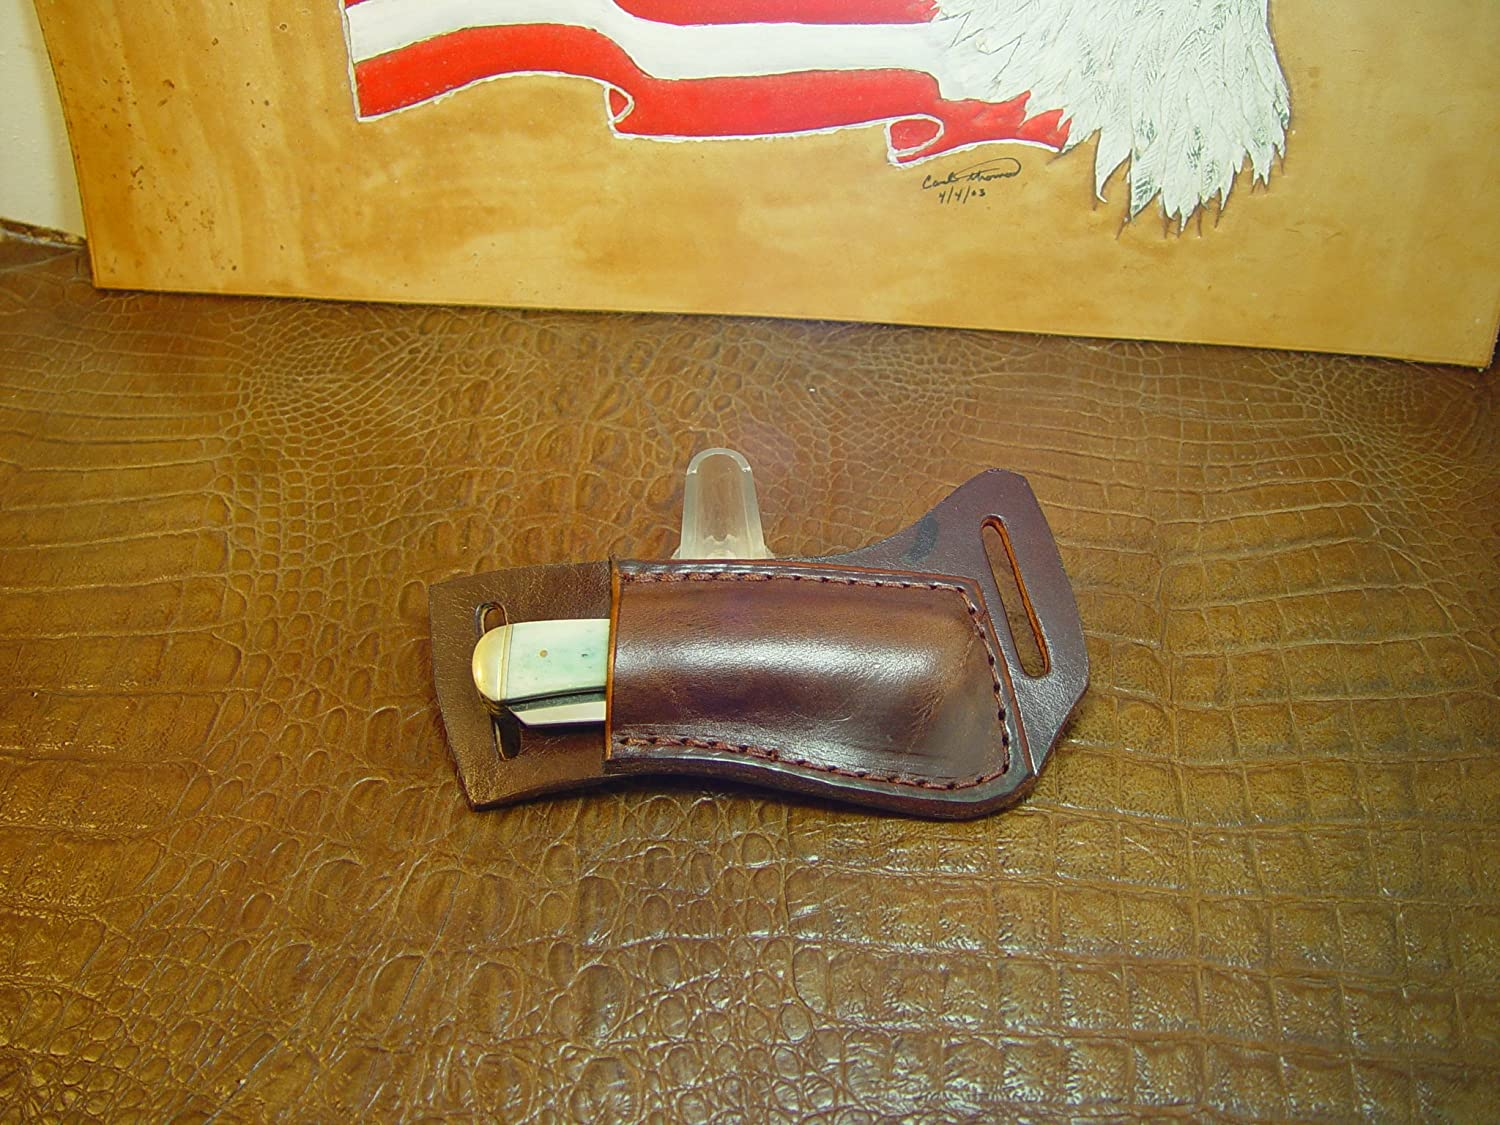 Custom Right-hand Cross Draw Trapper Style Folding Knife Sheath. Made Out of 10 Ounce Buffalo Hide Leather. Dyed Light Brown Sheath Only Knife Not Included.